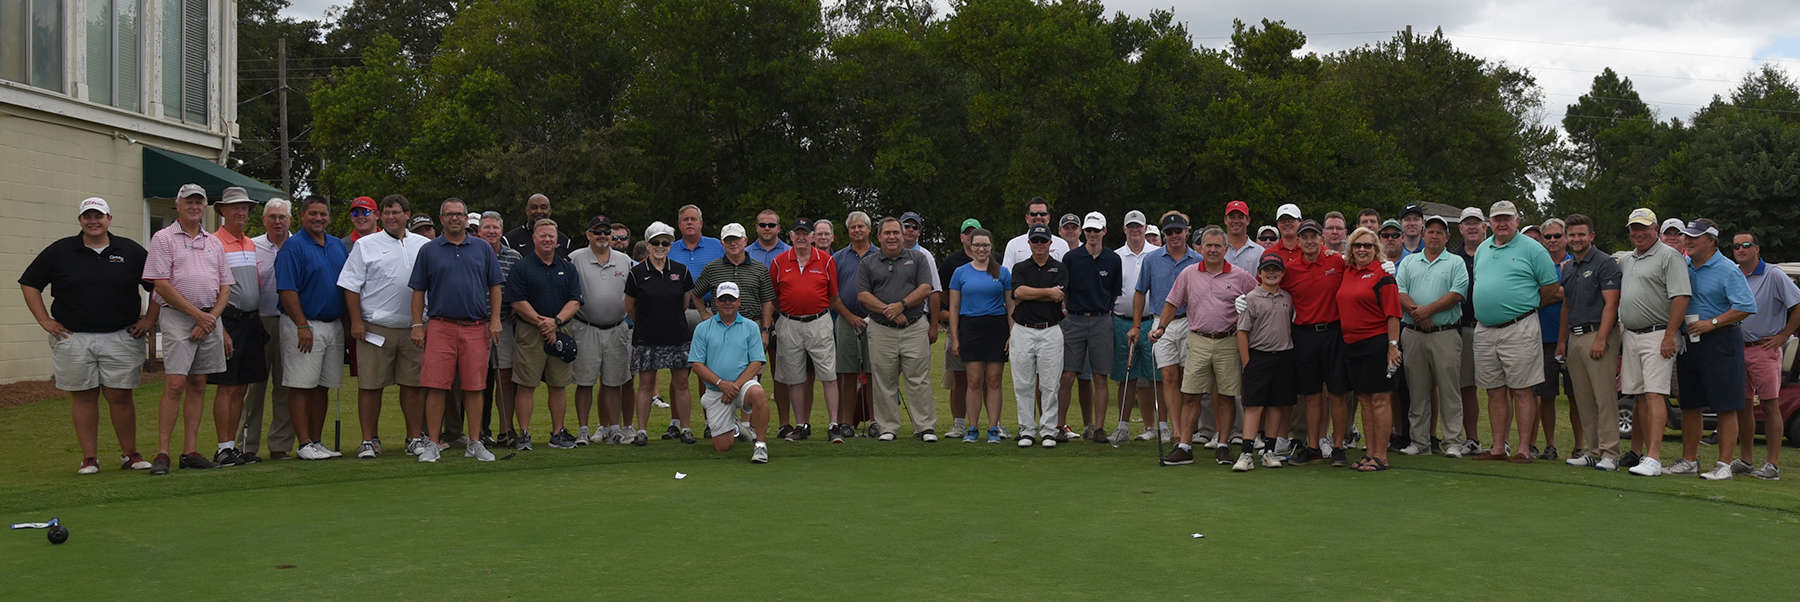 Shown above are all the individuals who participated in the SGTC Jets Booster Club Sparky Reeves Golf Classic.